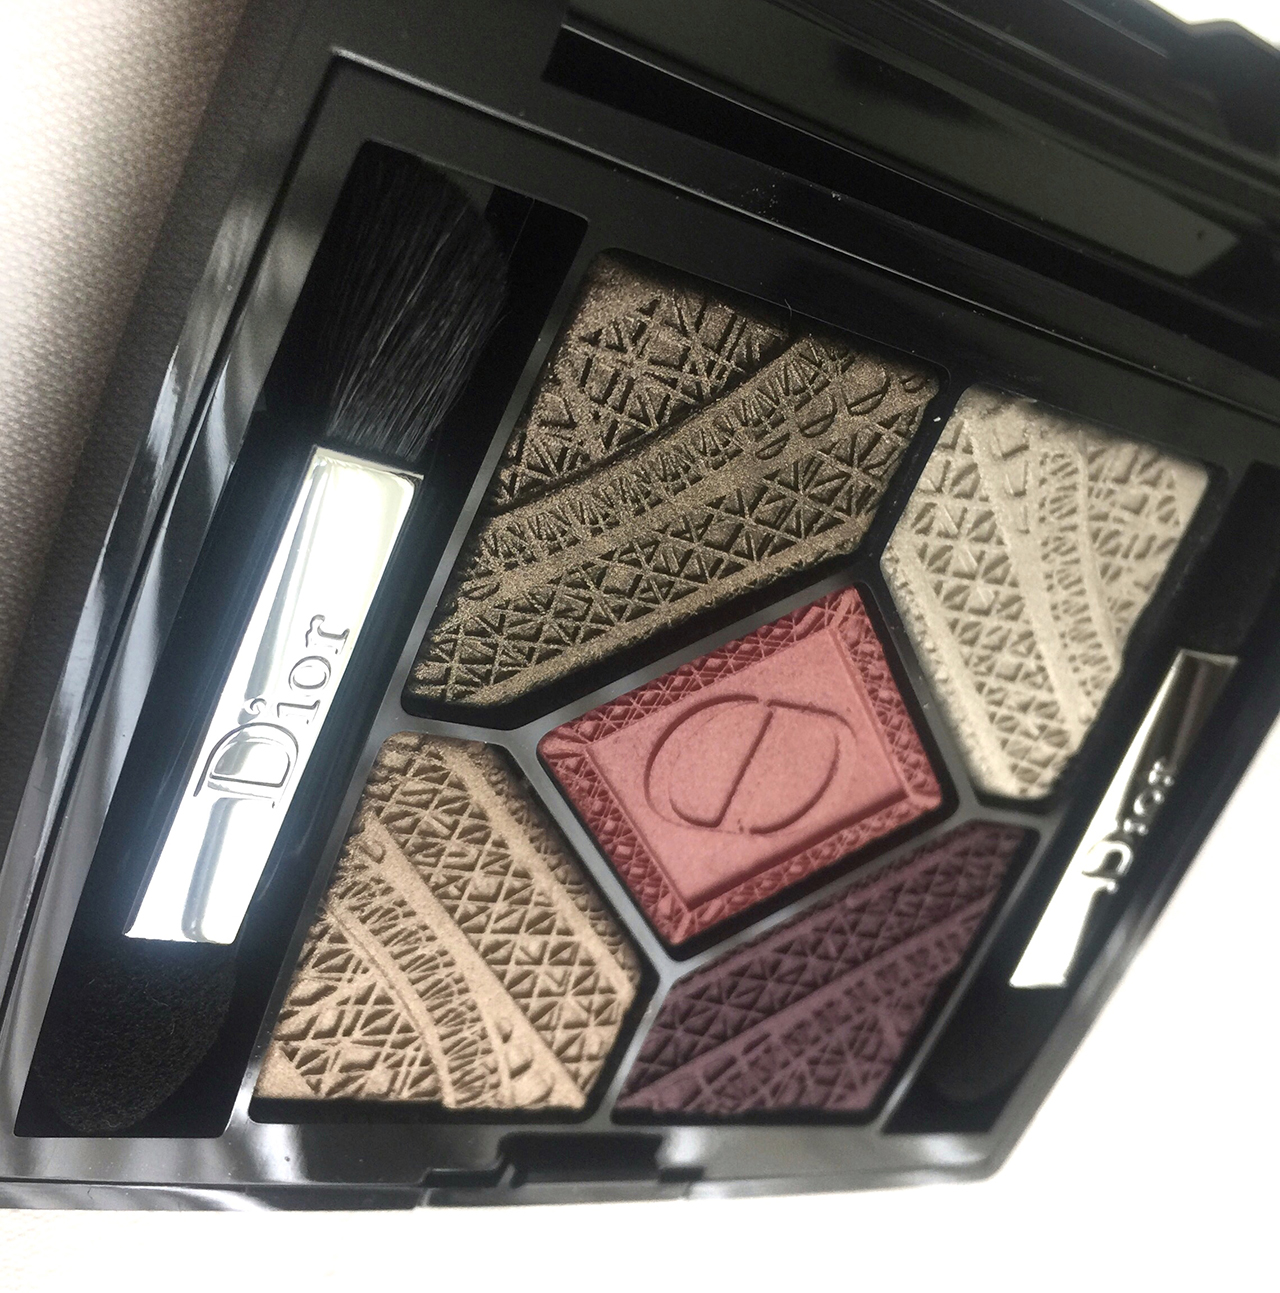 Dior Fall 2016 Capitol of Light palette